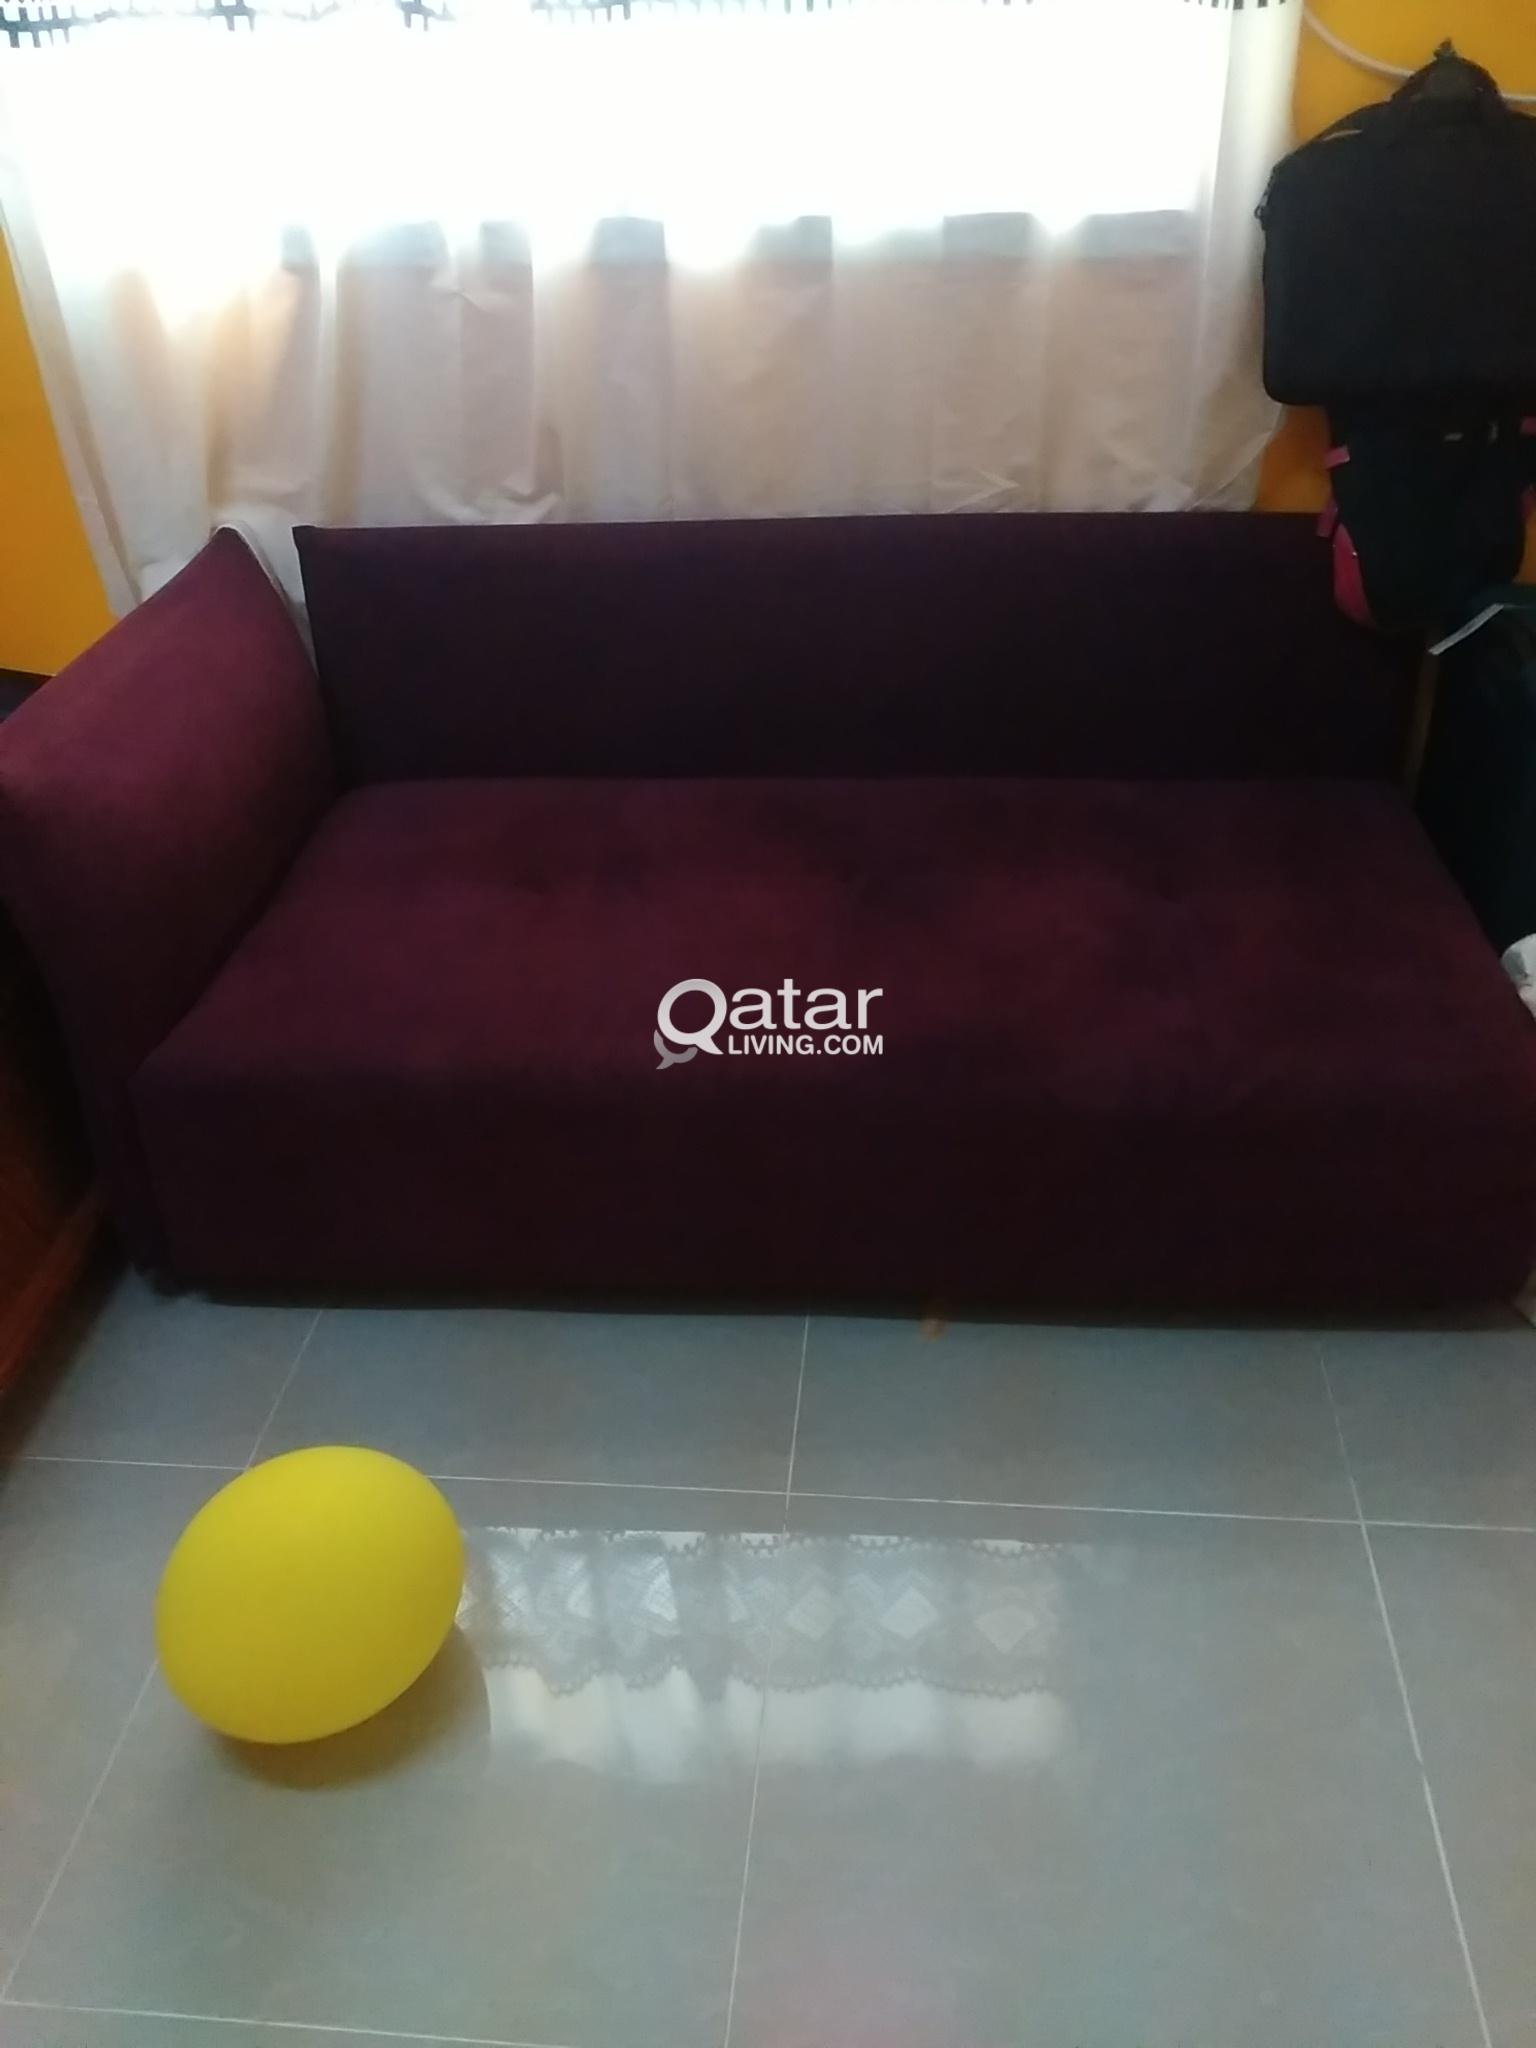 Sofa Bed For Sale Qatar Living